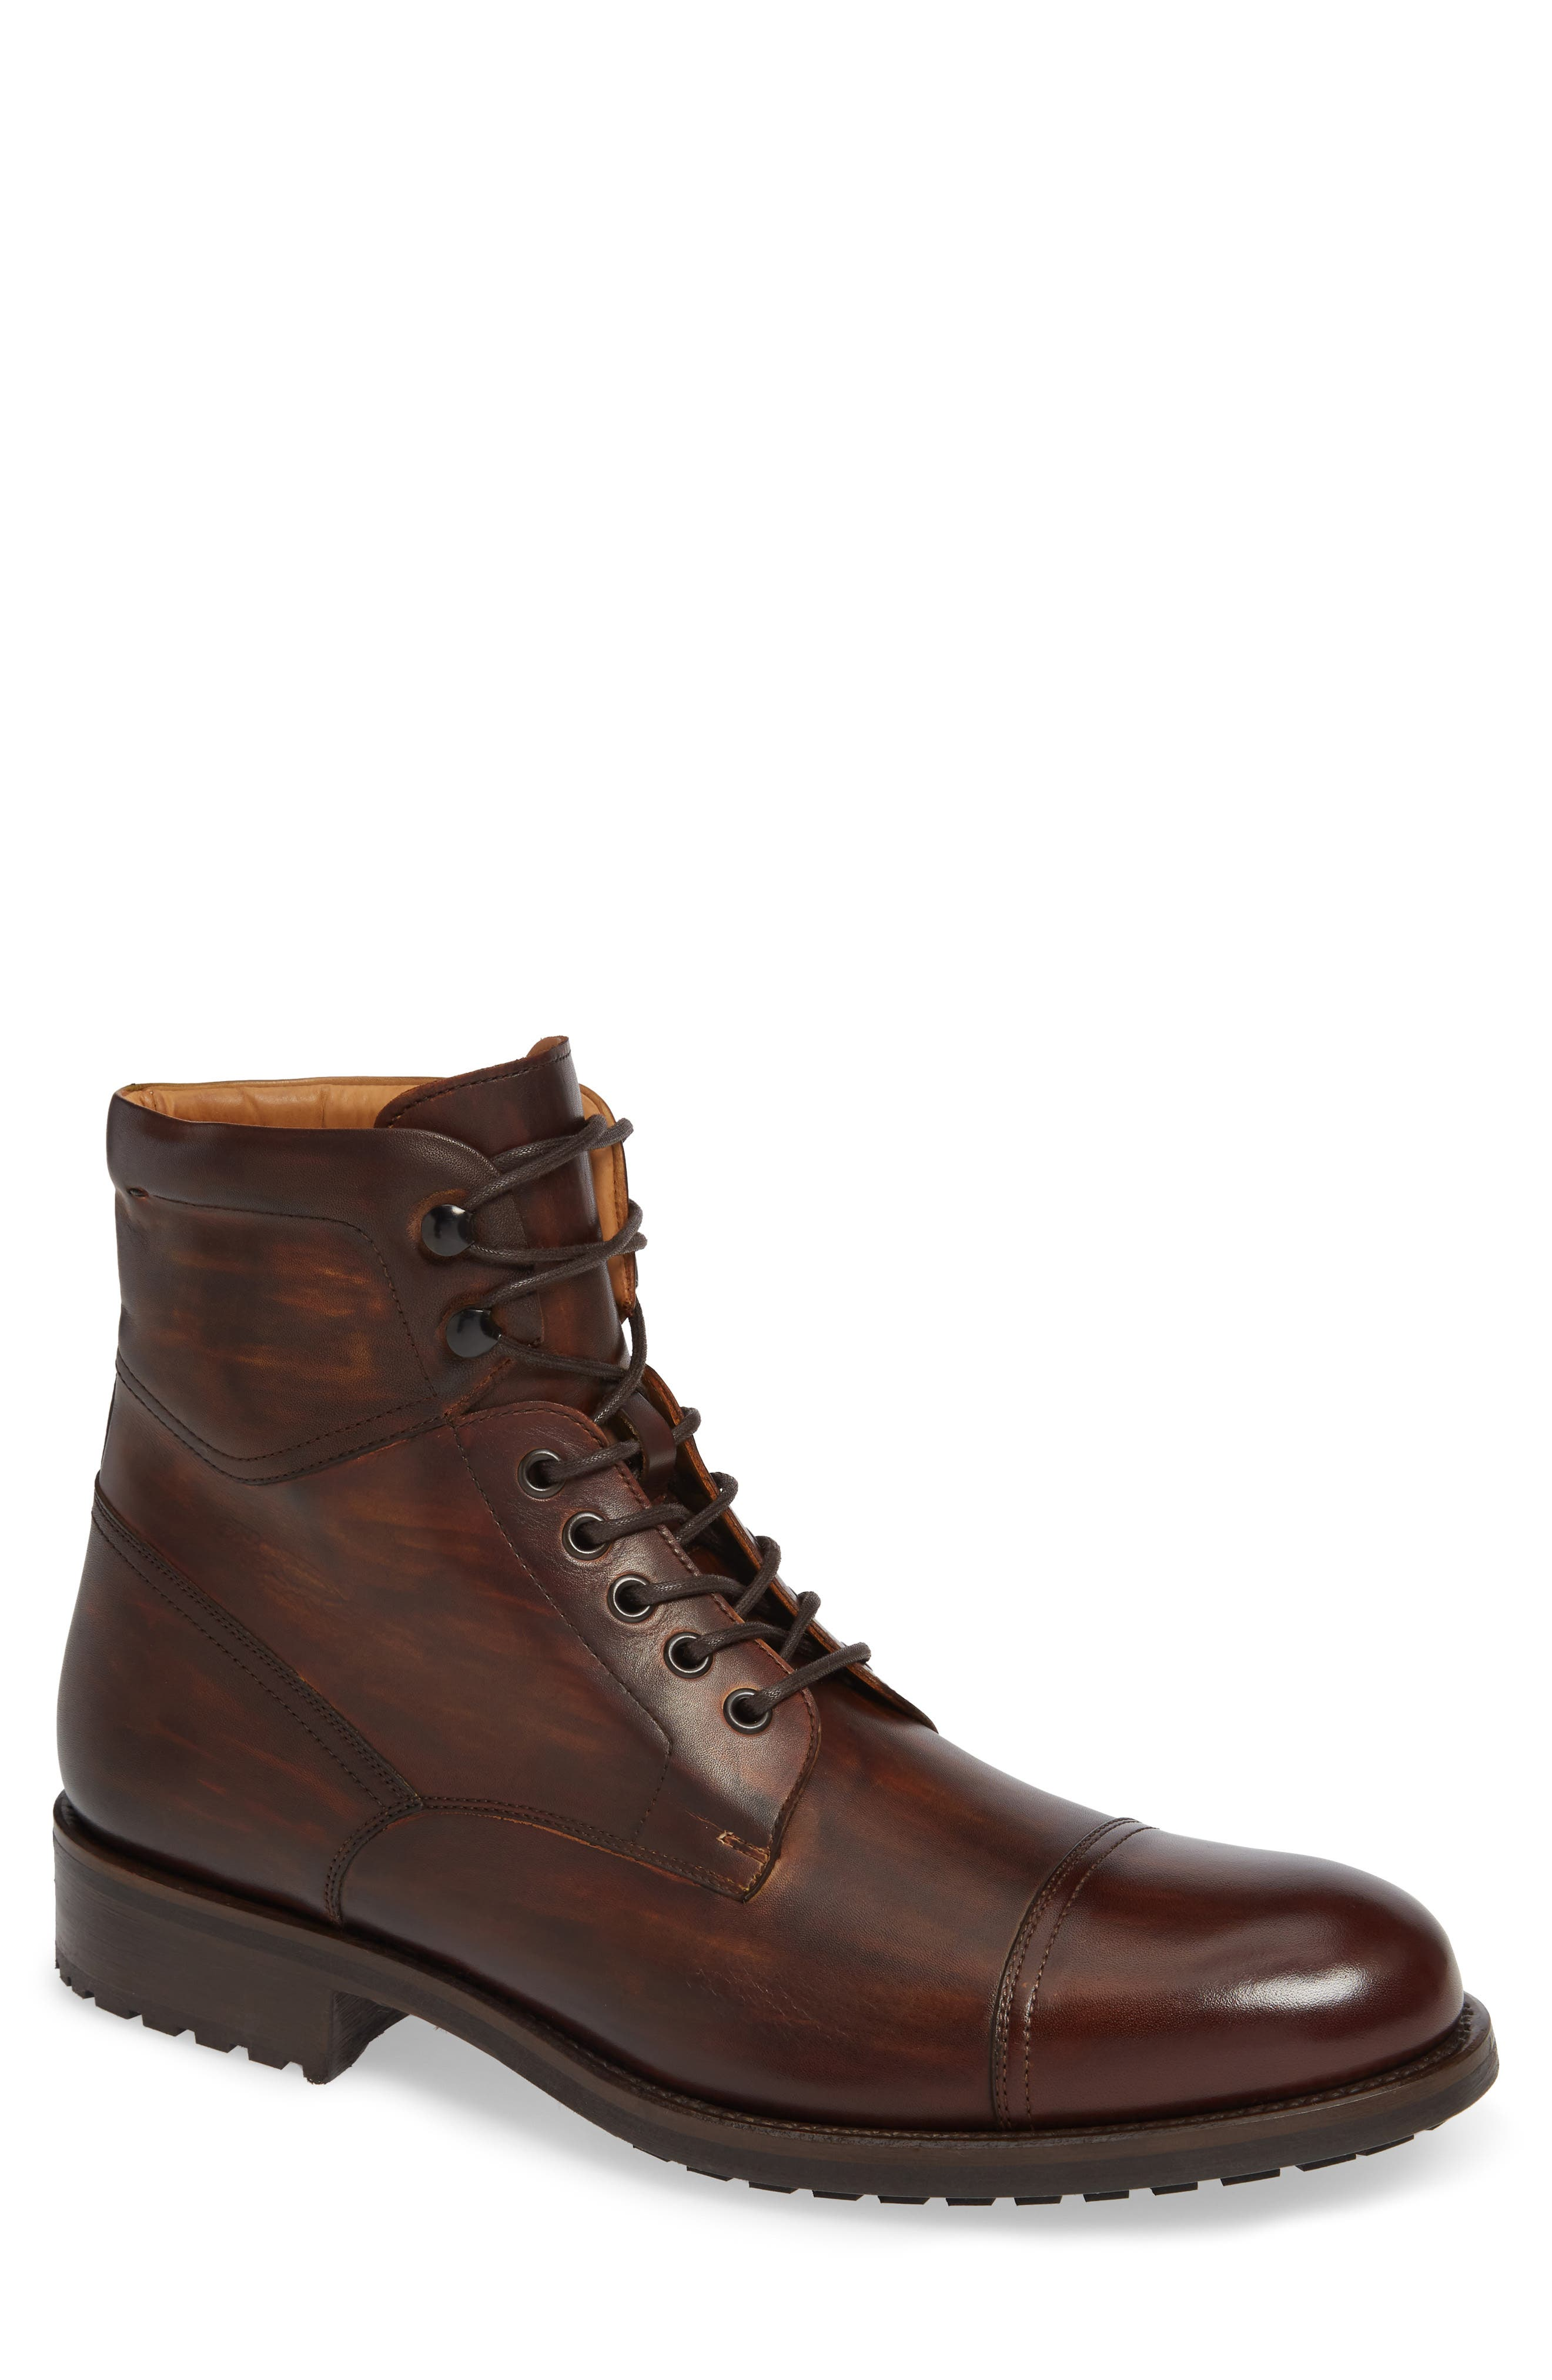 Peyton Cap Toe Boot,                         Main,                         color, TOBACCO LEATHER